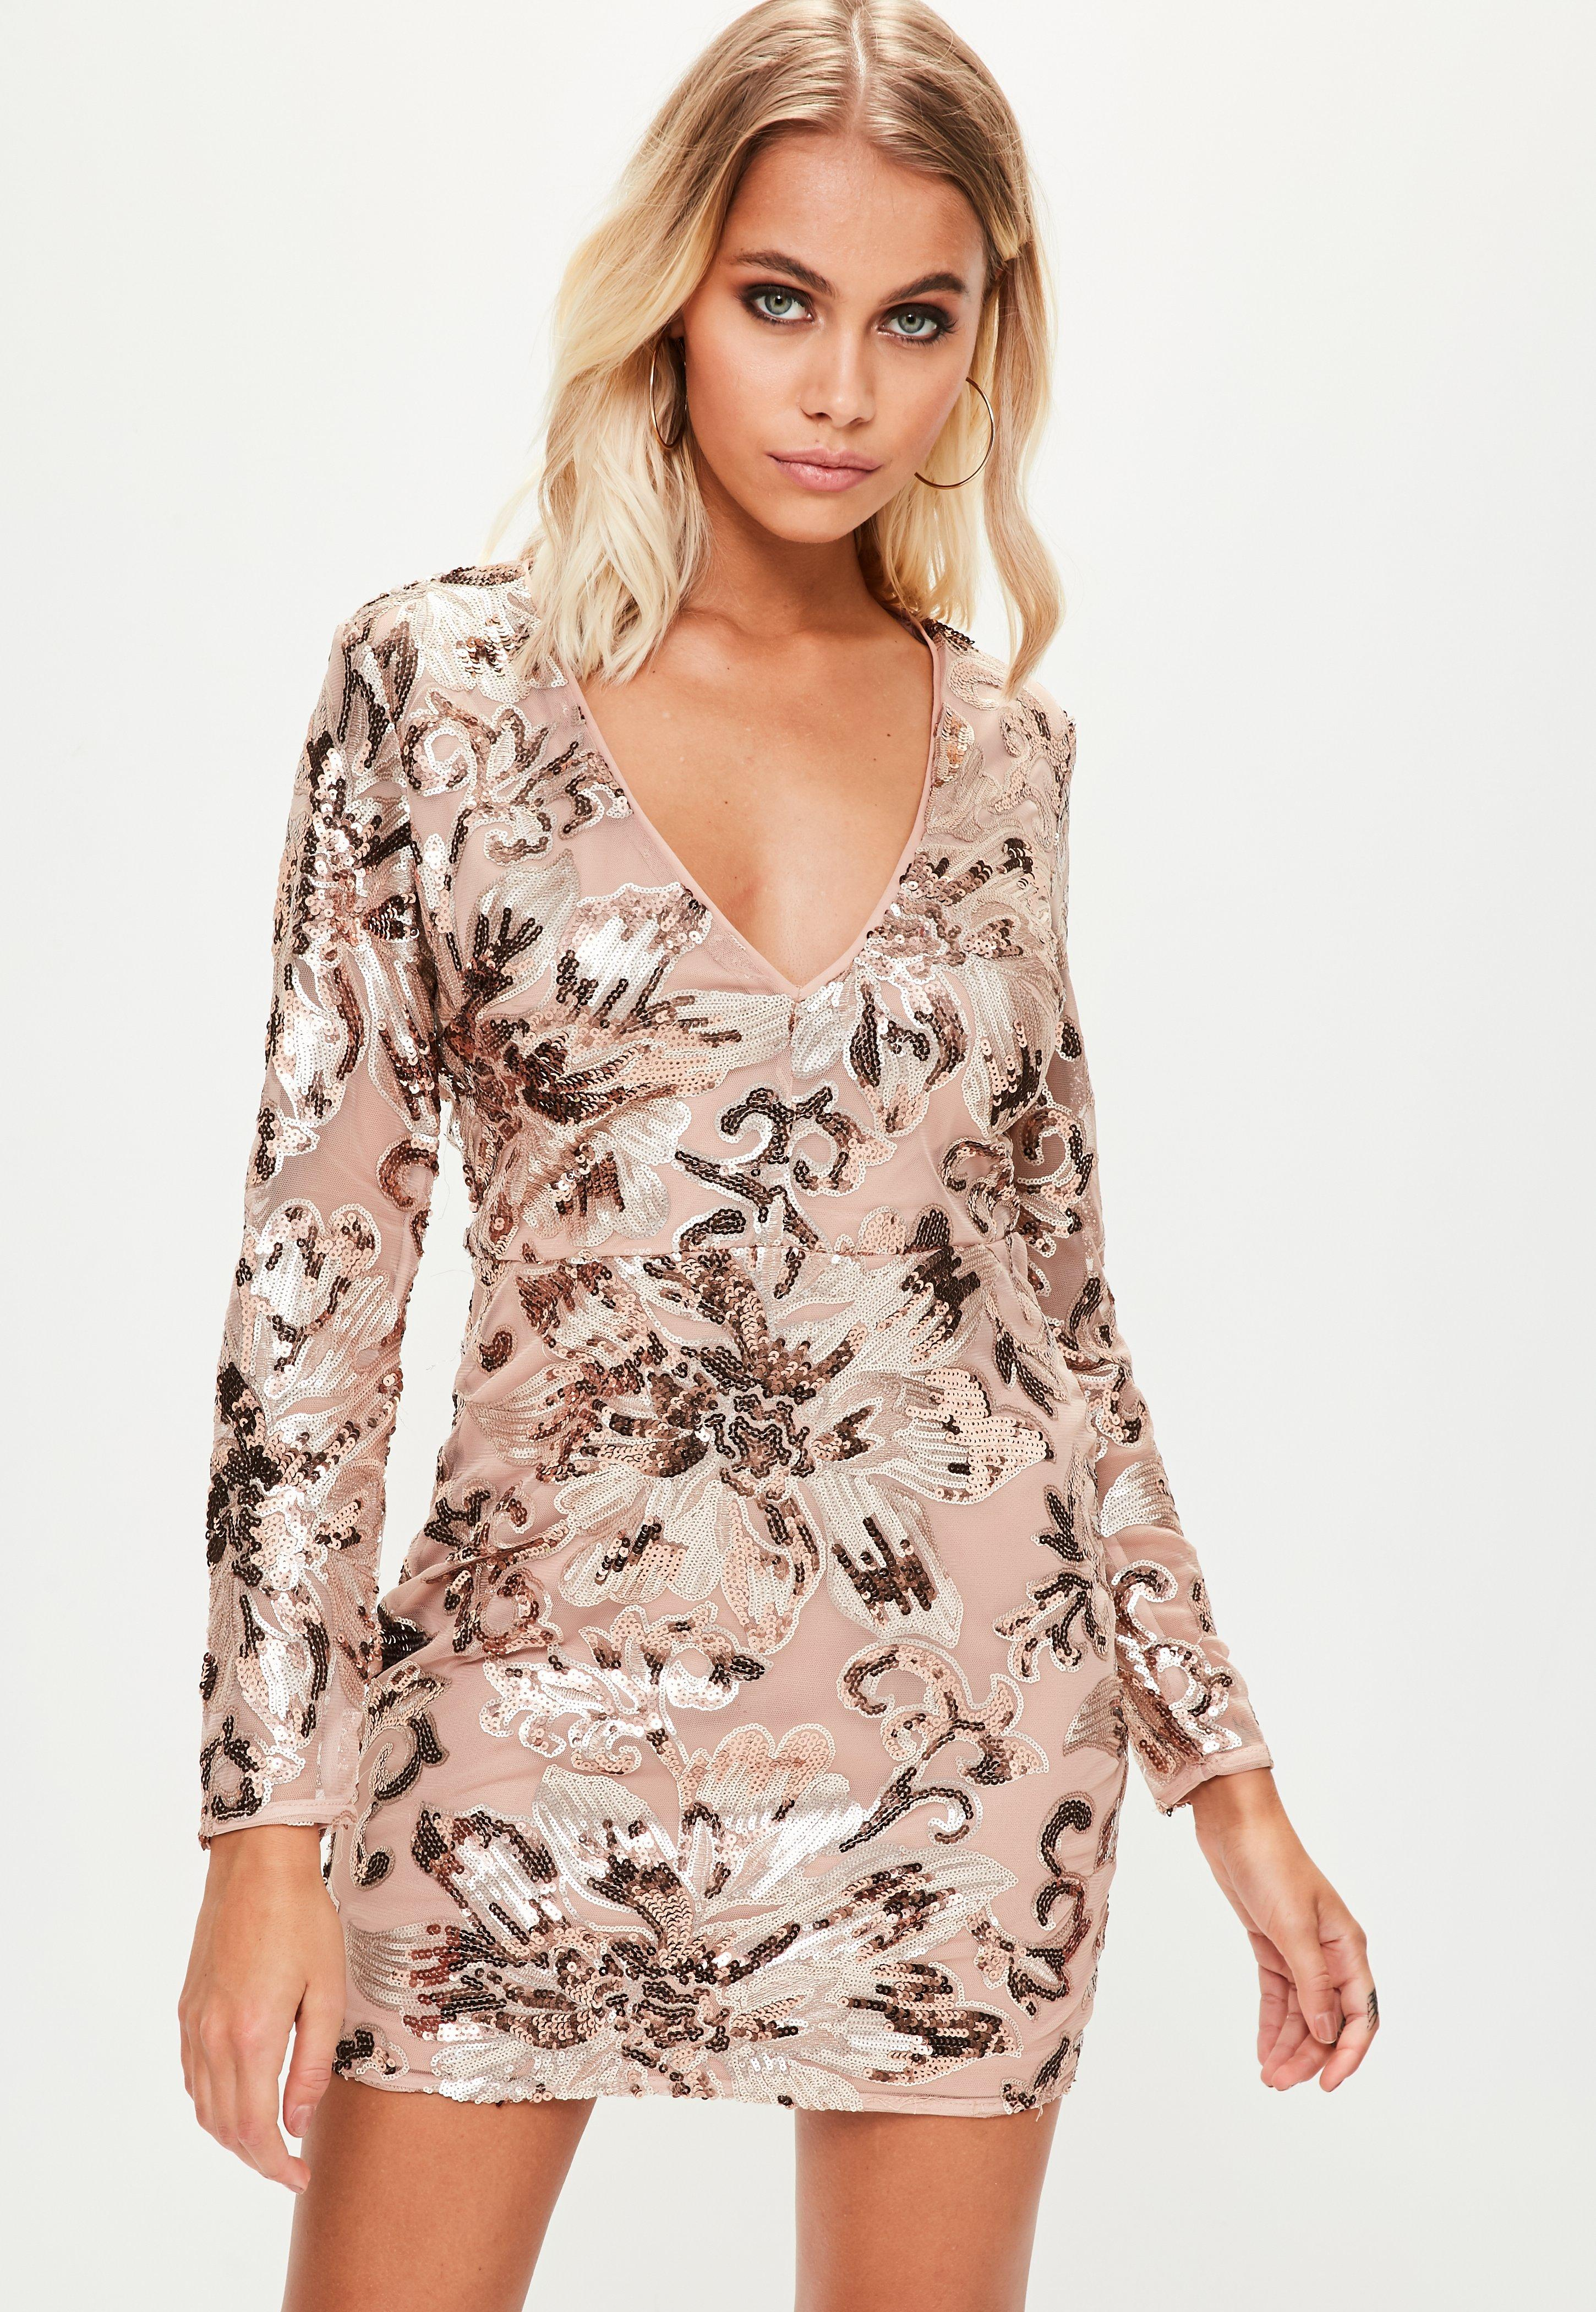 a7ed4883812 Lyst - Missguided Nude Sequin Long Sleeve Bodycon Dress in Natural